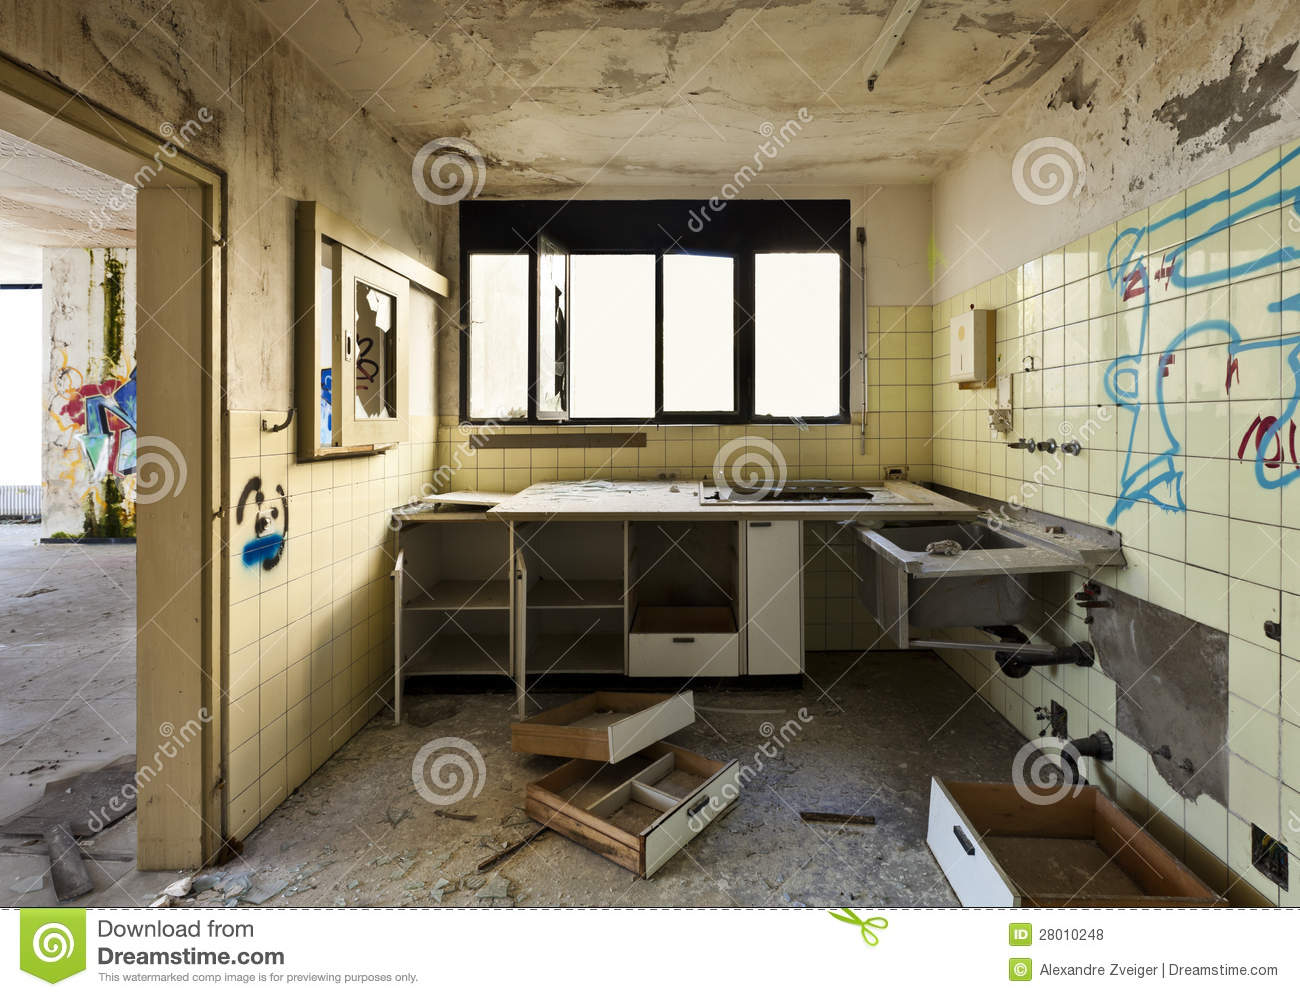 Old Kitchen Old Kitchen Destroyed Royalty Free Stock Photos Image 28010248